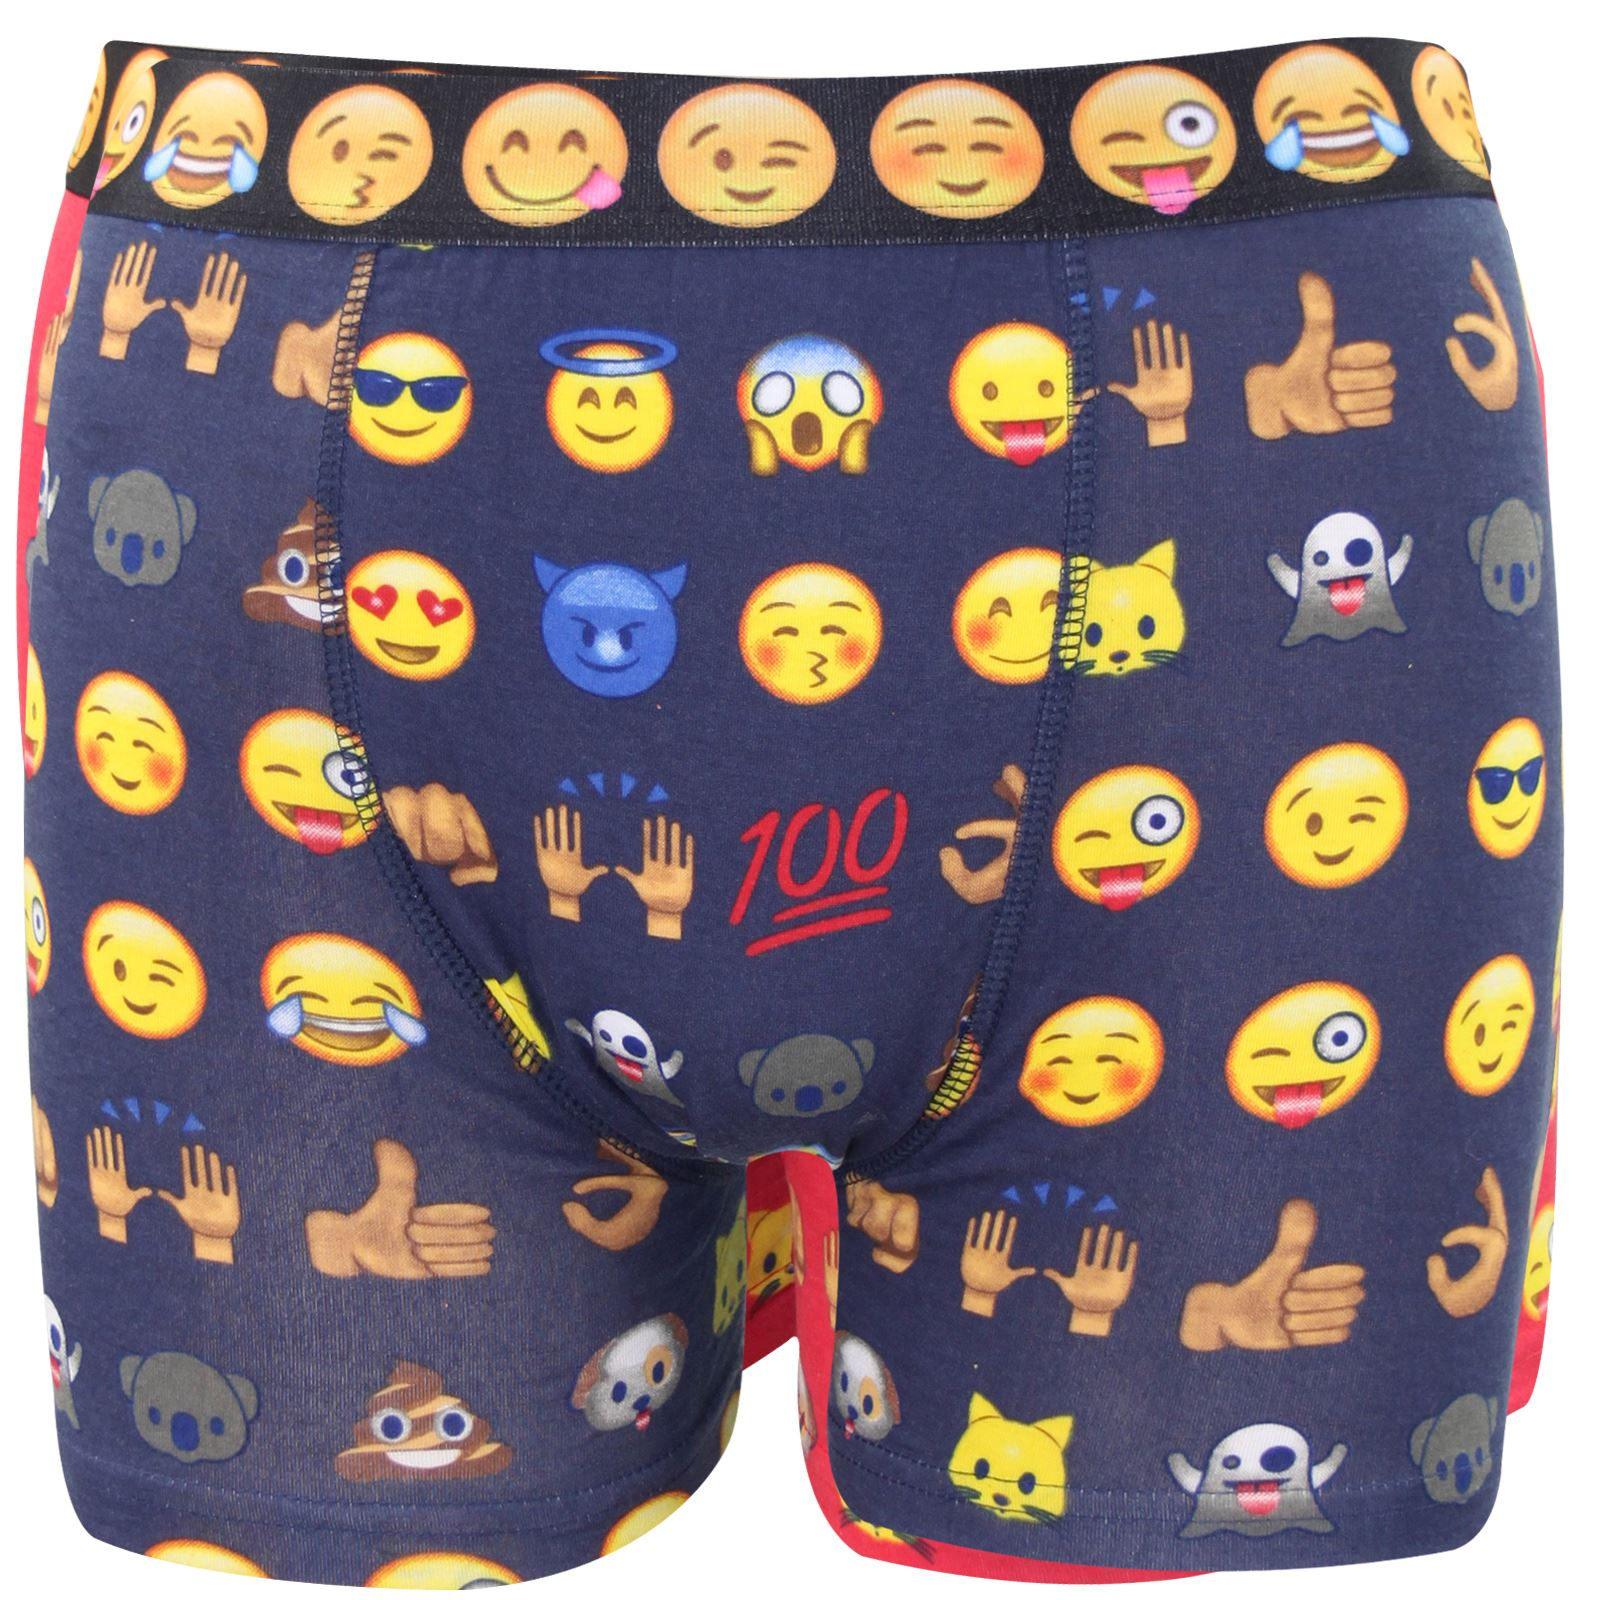 New Mens Emoji Printed Assorted Patterned Funny Novelty Shorts Trunks Underwear